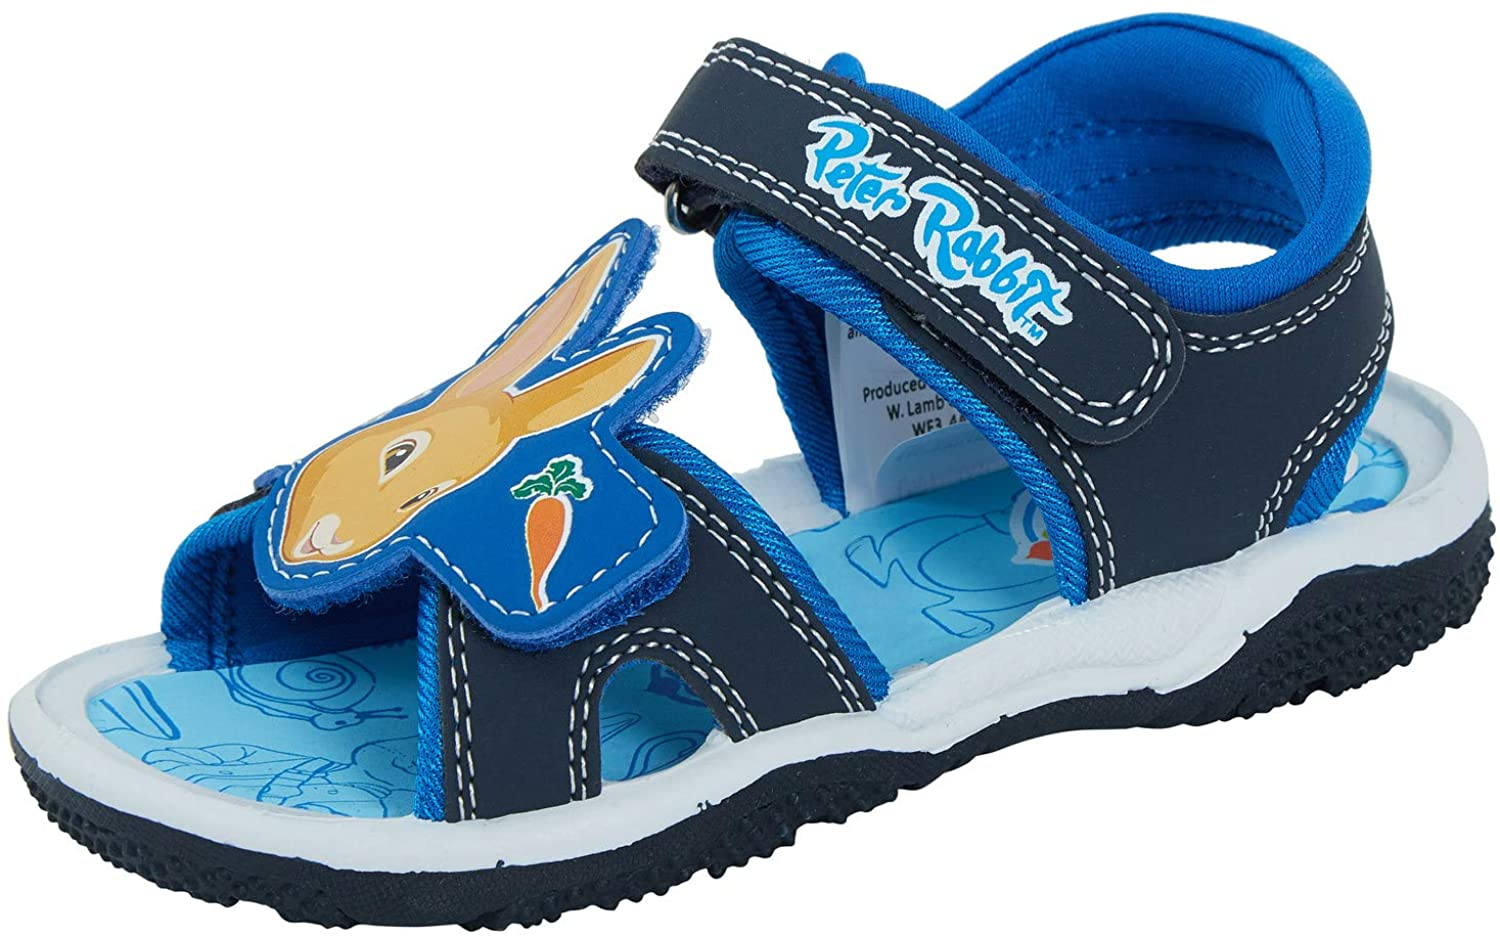 Boys Peter Rabbit Sports Sandals Easy Fasten Shoes